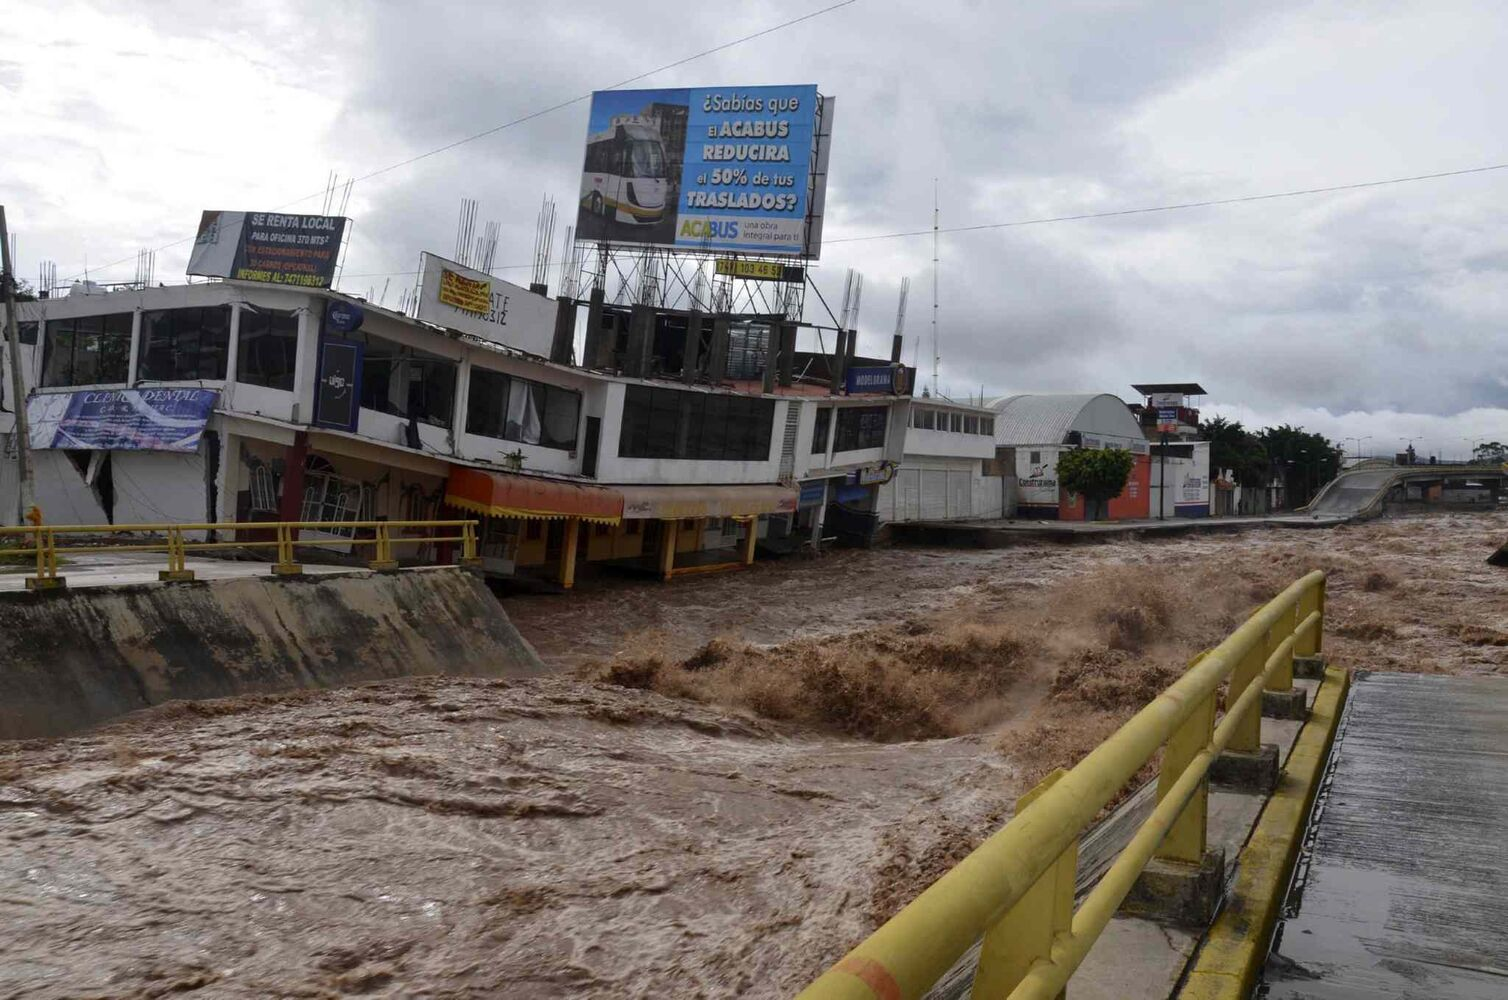 Floodwaters rage past an urban area after the Huacapa River overflowed due to heavy rains caused by Tropical Storm Manuel in Chilpancingo, Mexico, Monday, Sept. 16, 2013.